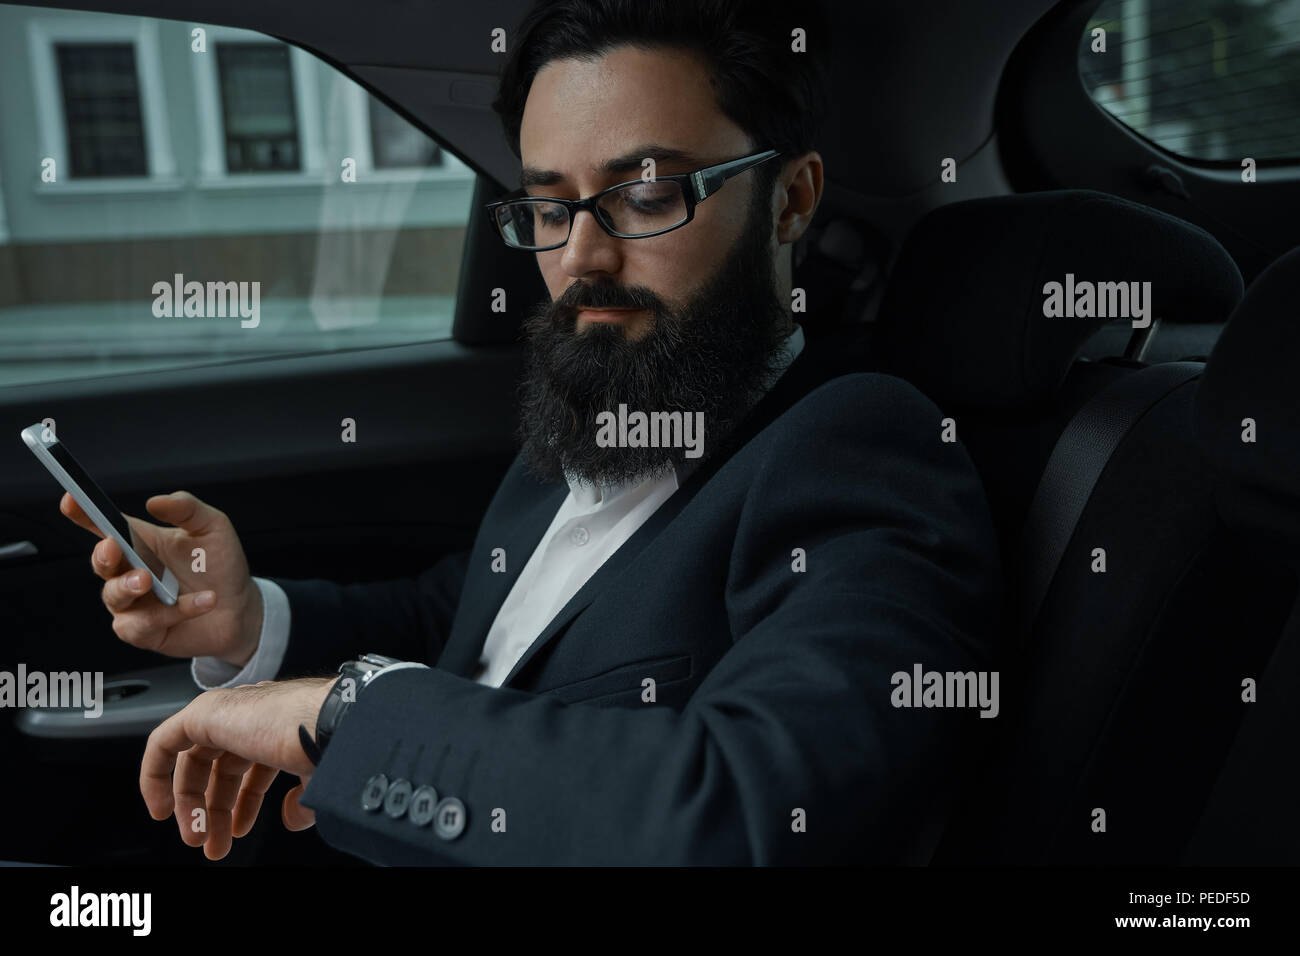 A businessman while traveling by car in the back seat using a sm - Stock Image